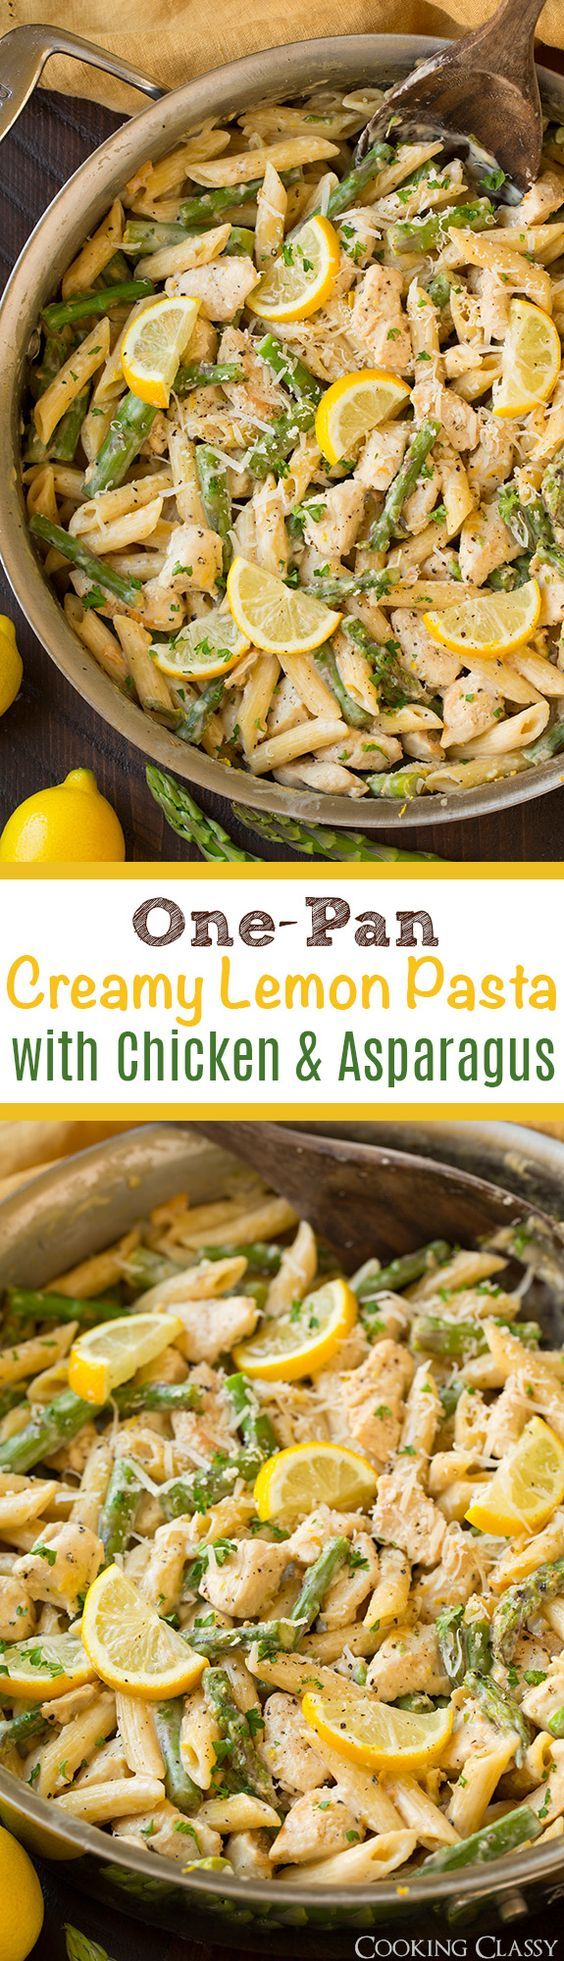 One-Pan Creamy Lemon Pasta with Chicken and Asparagus - so easy so flavorful…